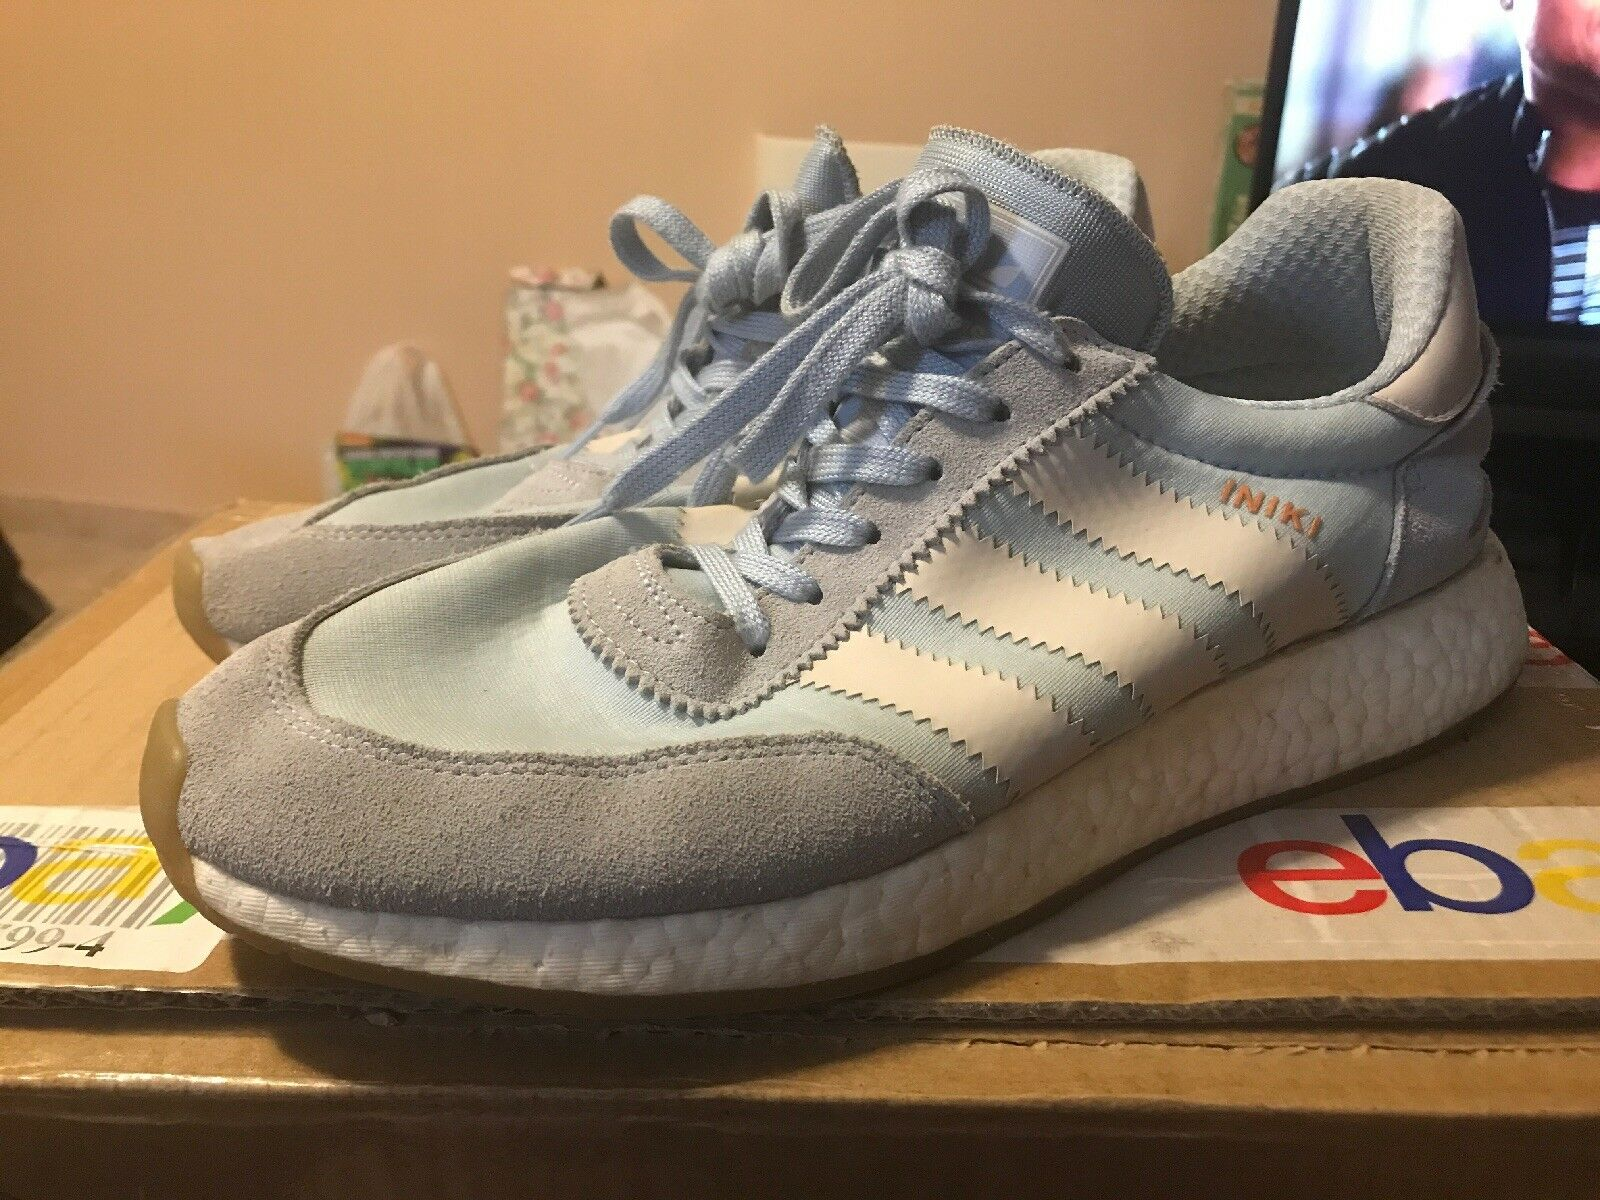 Men's Adidas Iniki Runner BB2099 Baby bluee White Size 11.5 Pre Owned Authentic